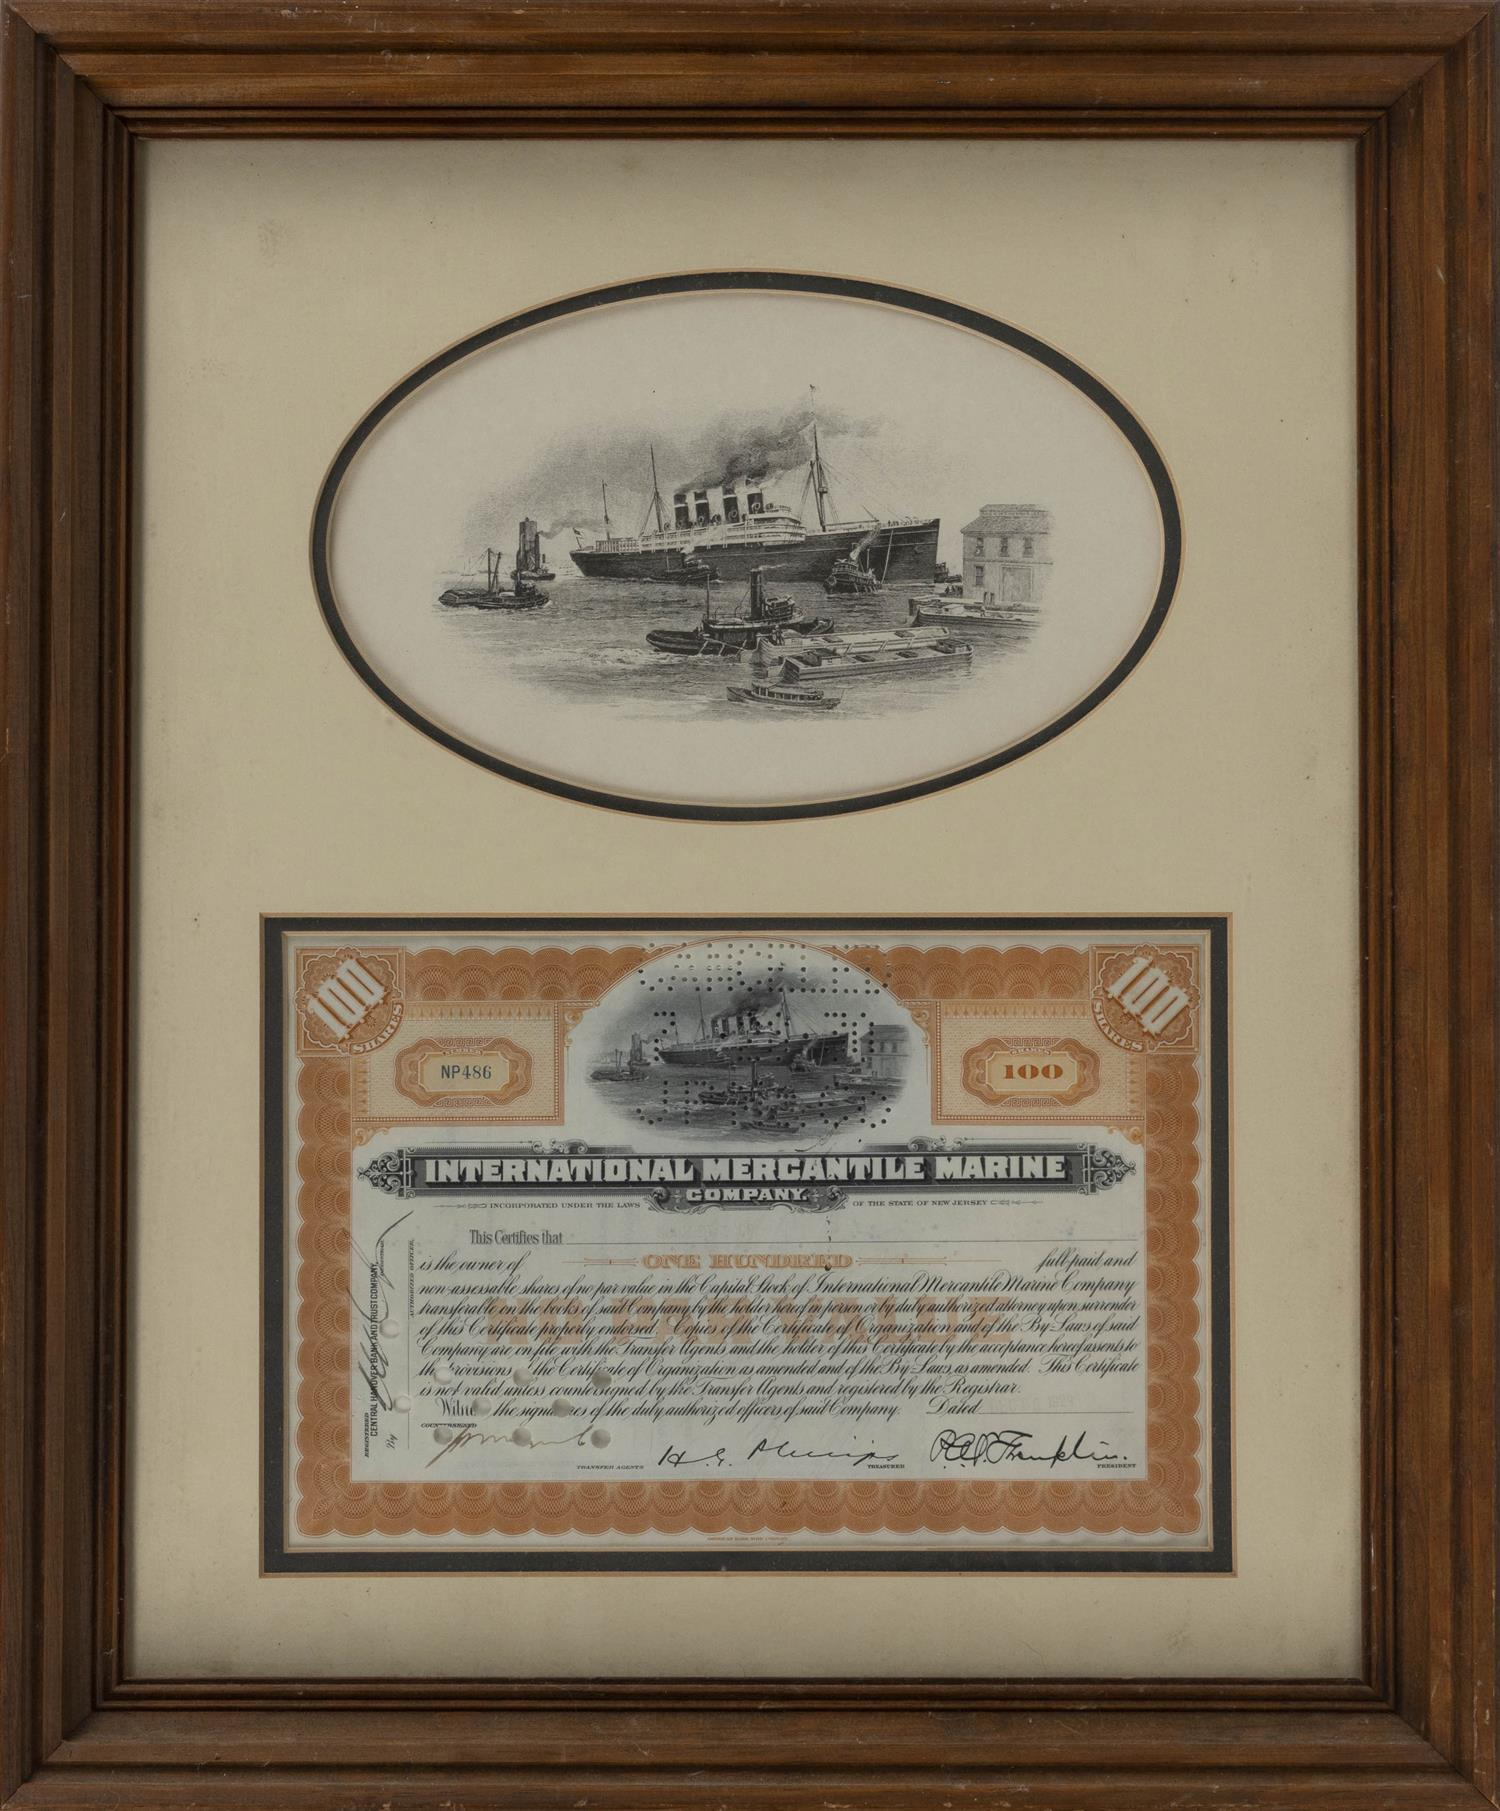 INTERNATIONAL MERCANTILE MARINE COMPANY STOCK CERTIFICATE Undated and cancelled certificate framed below an oval depiction of a stea...